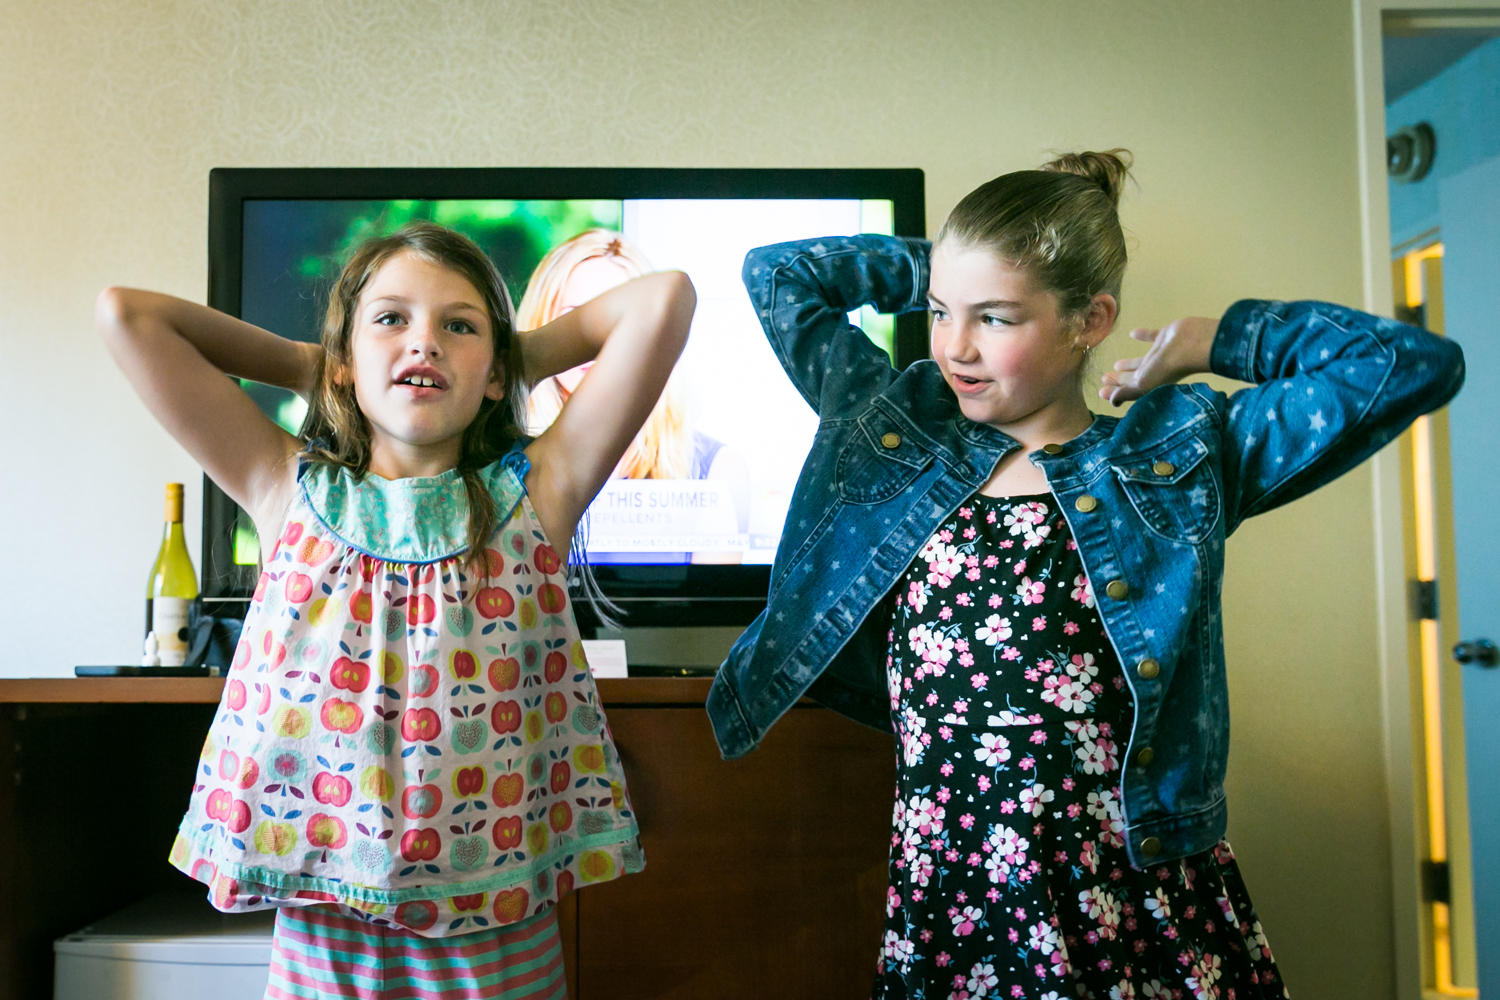 Two little girls dancing with arms up in a hotel room